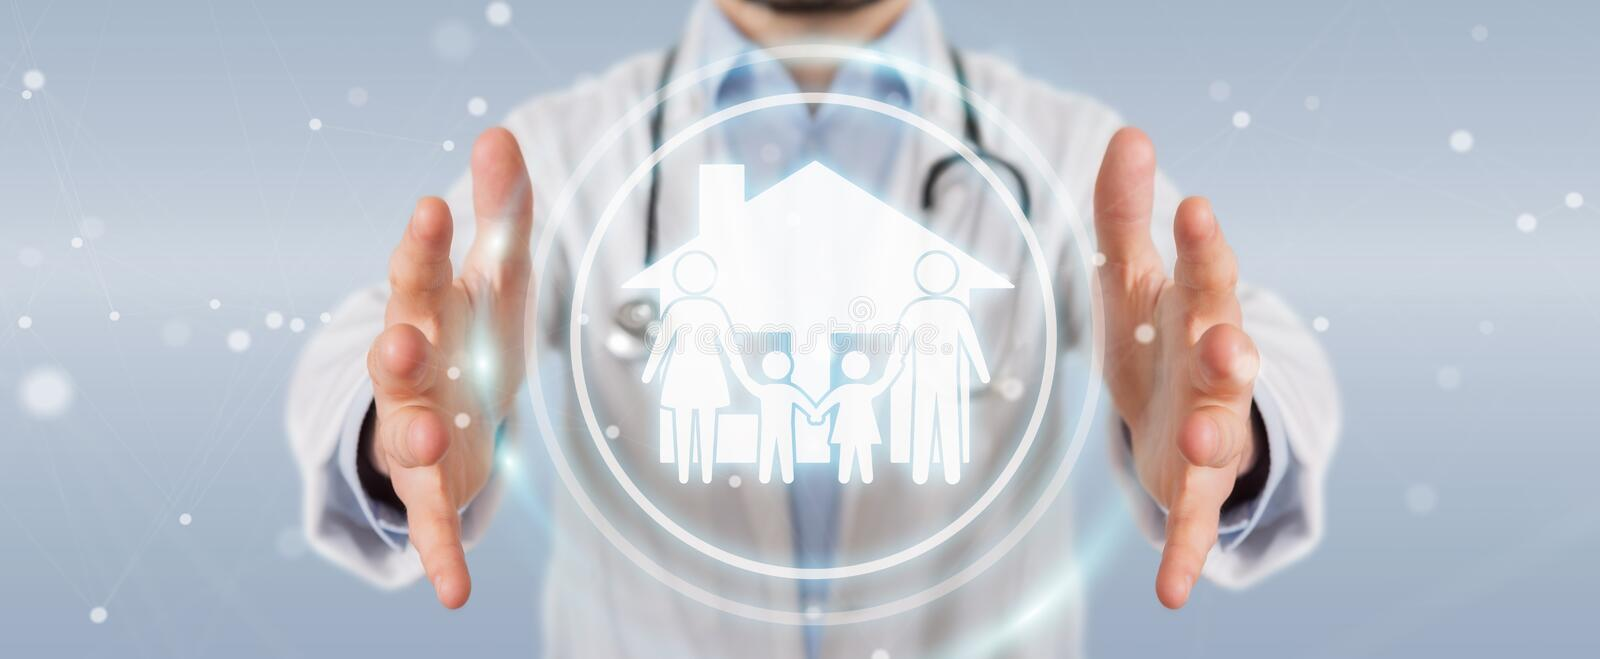 Doctor using digital family care interface 3D rendering stock illustration